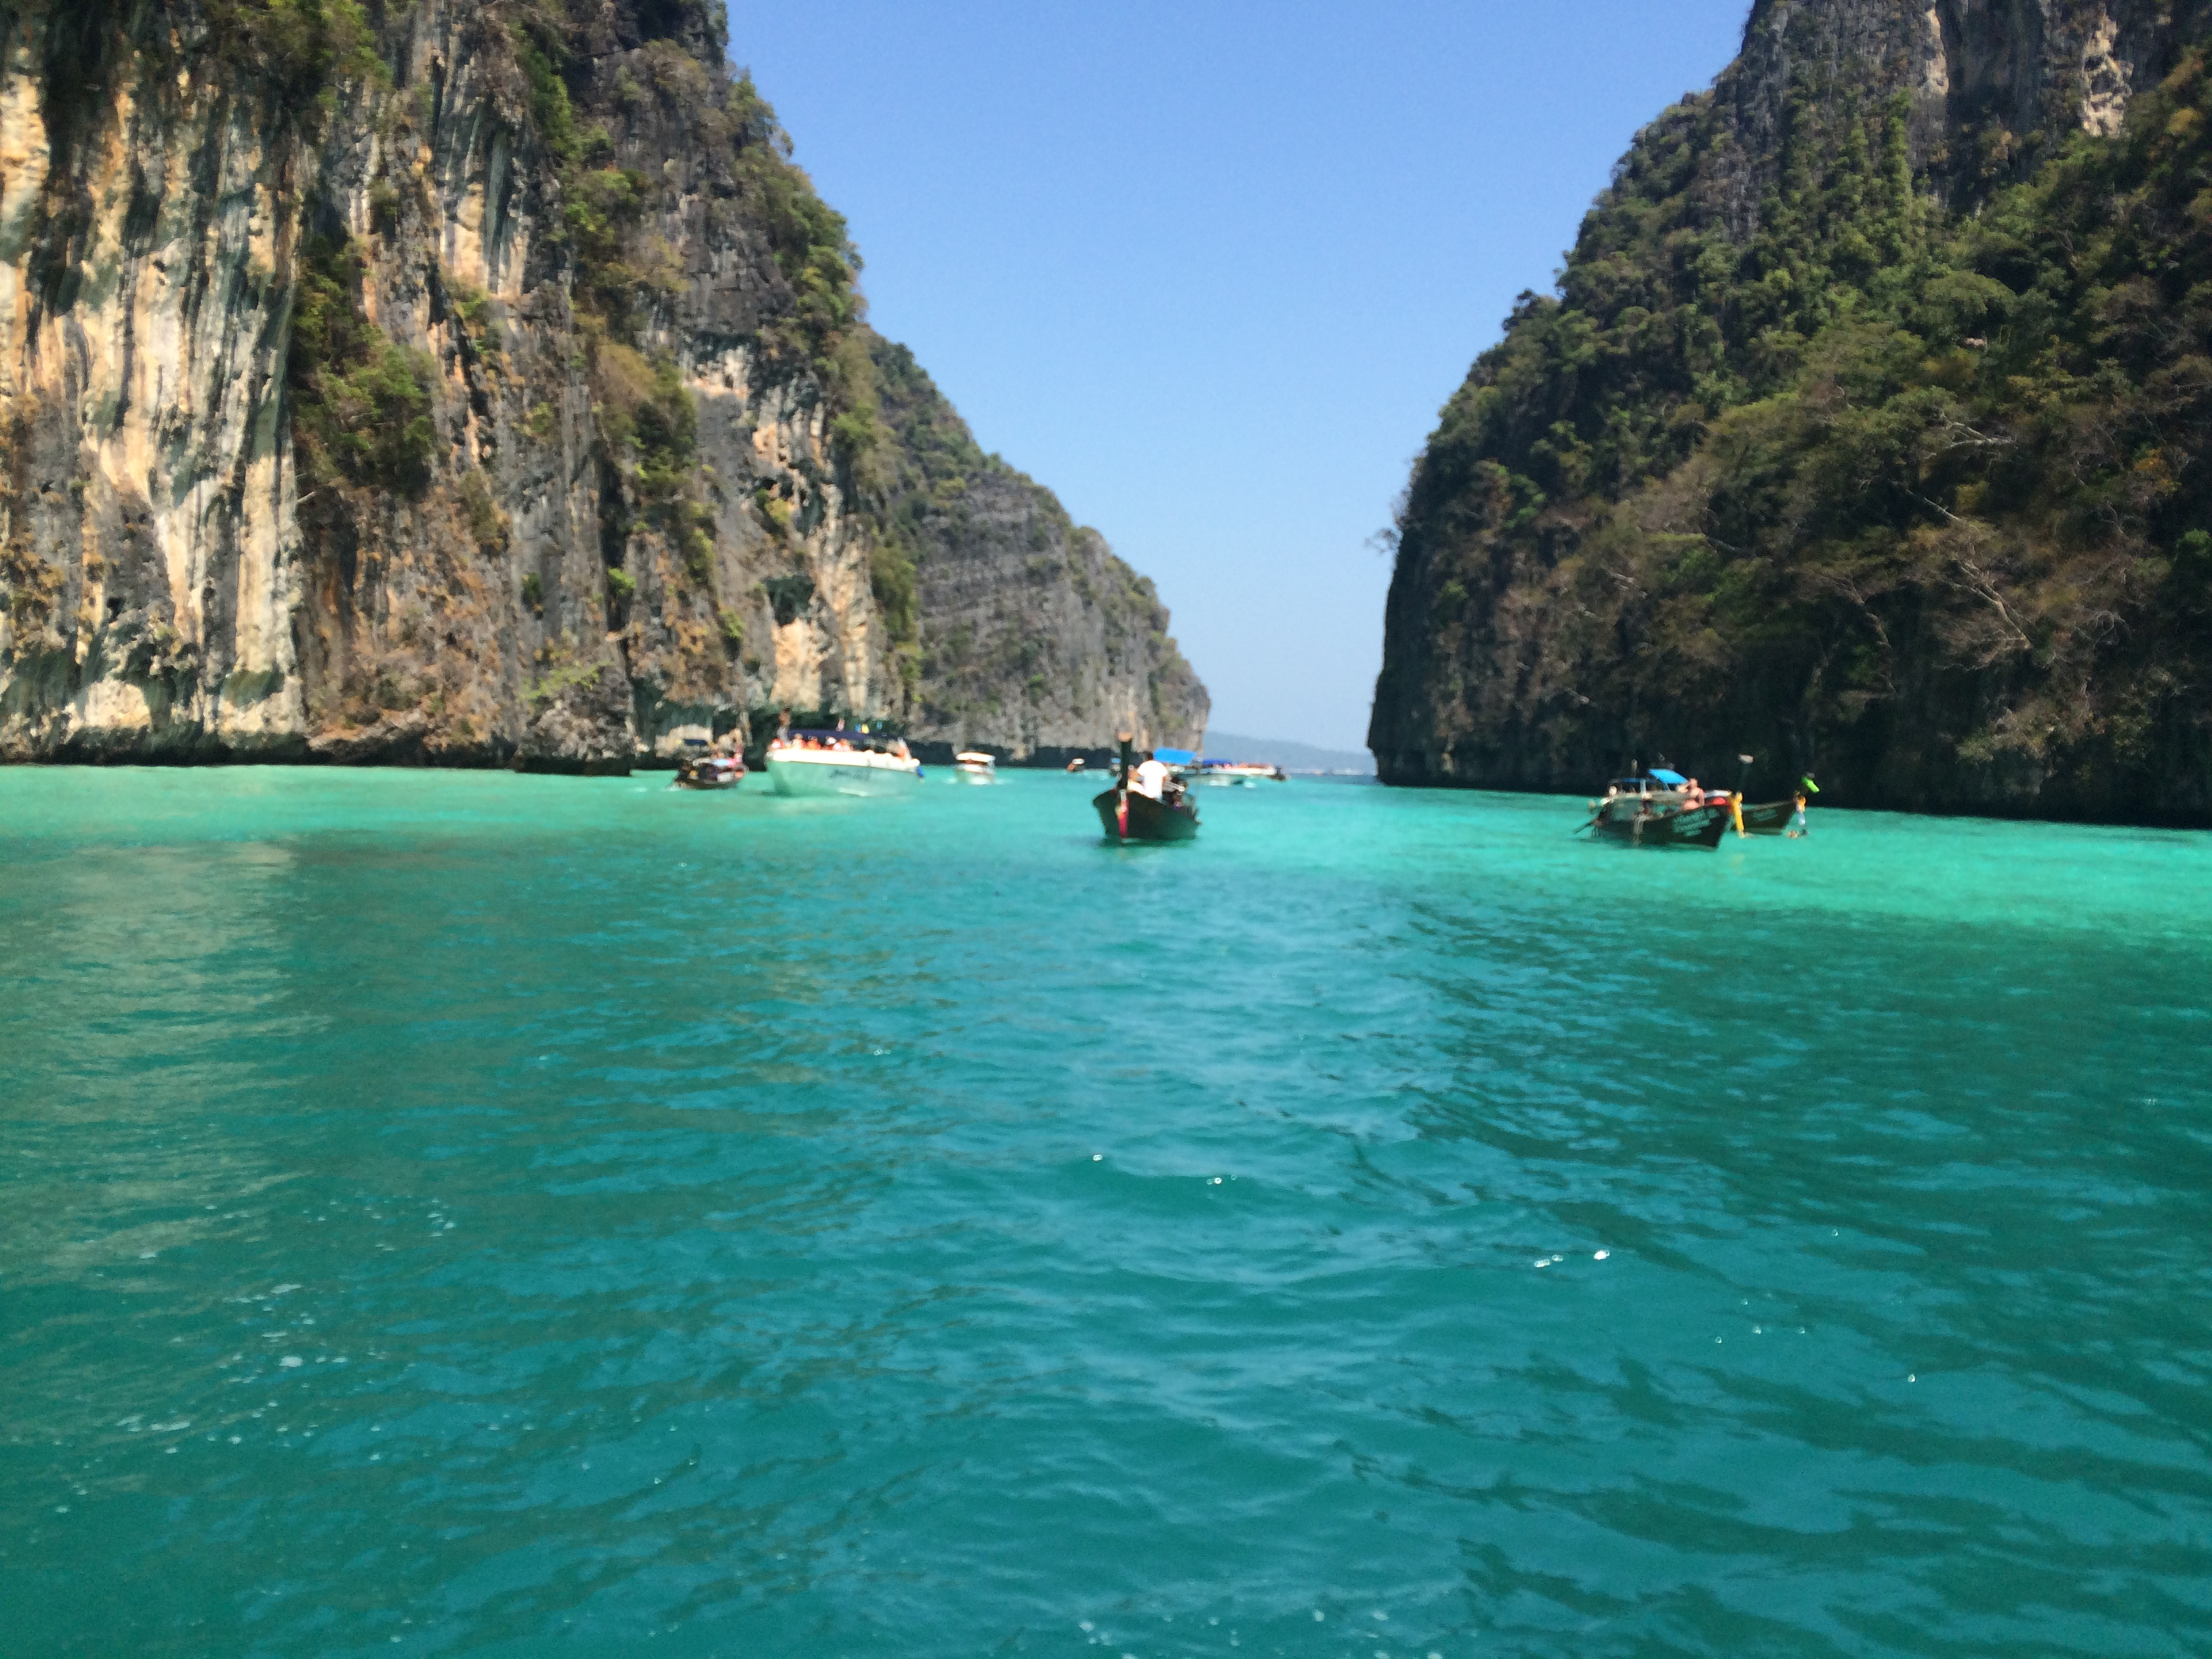 I spent the day boating to the Phi Phi islands.